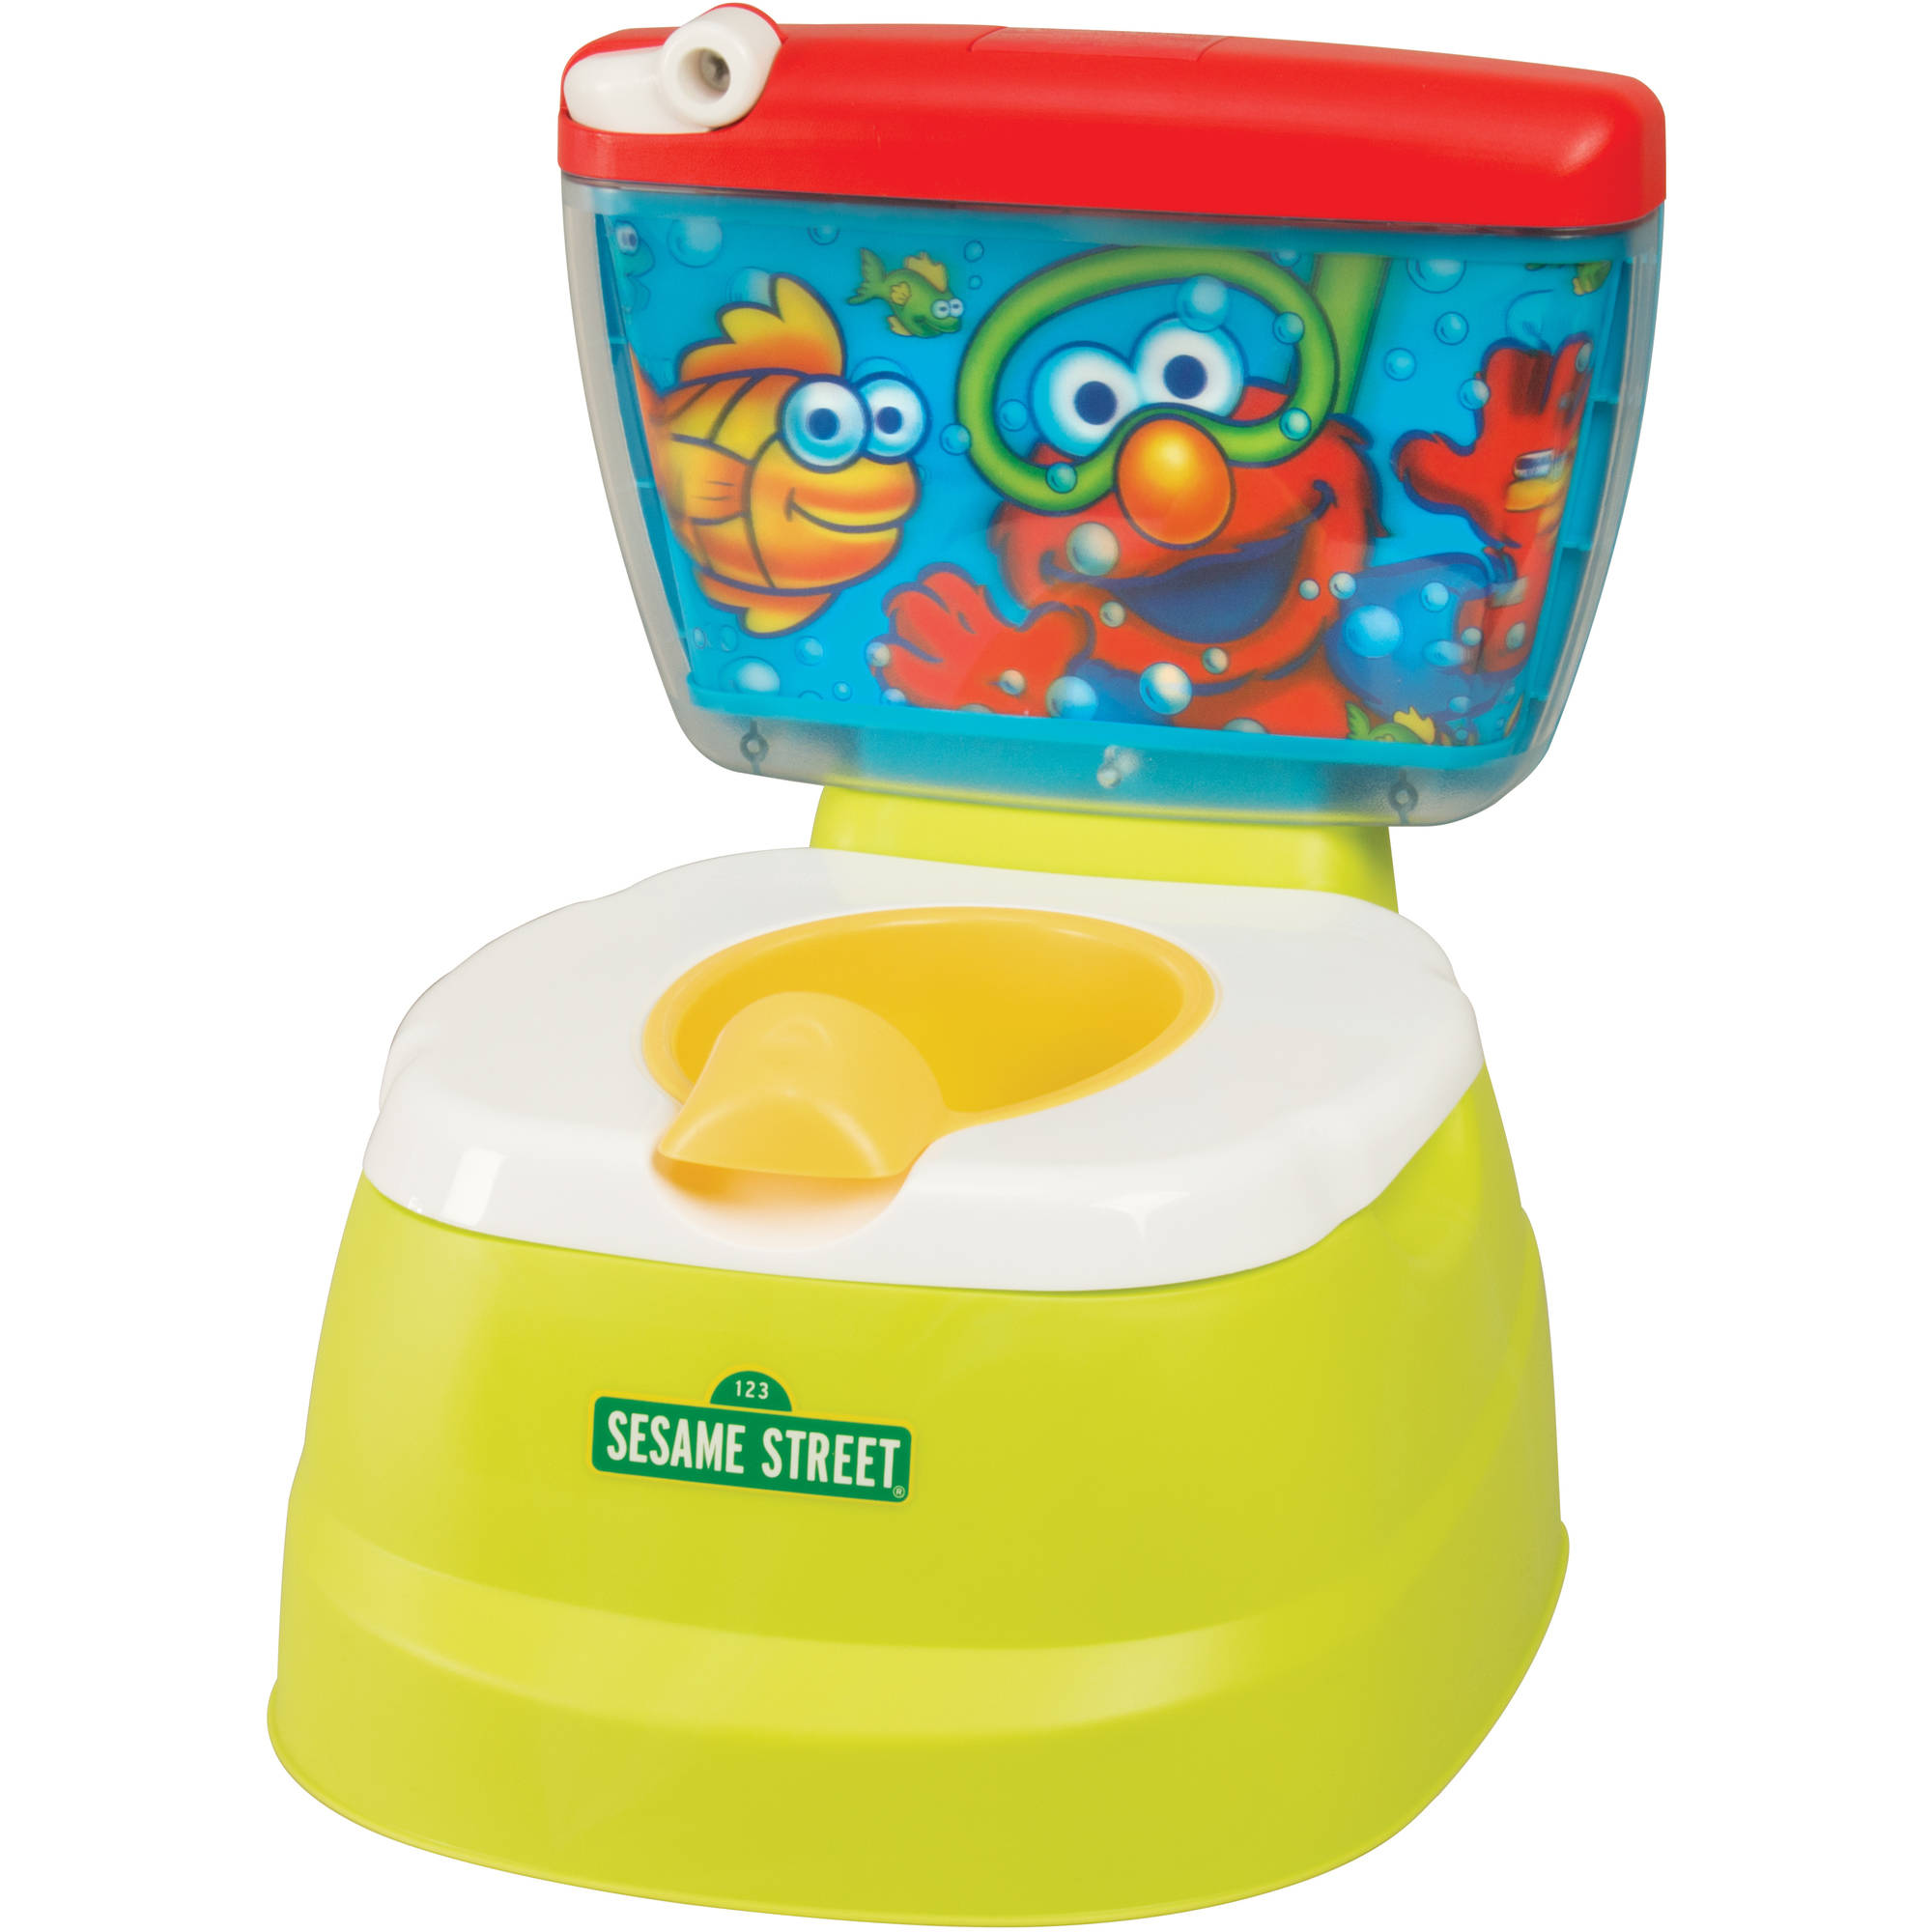 The First Years Nickelodeon 3 in 1 Paw Patrol Potty System Skye